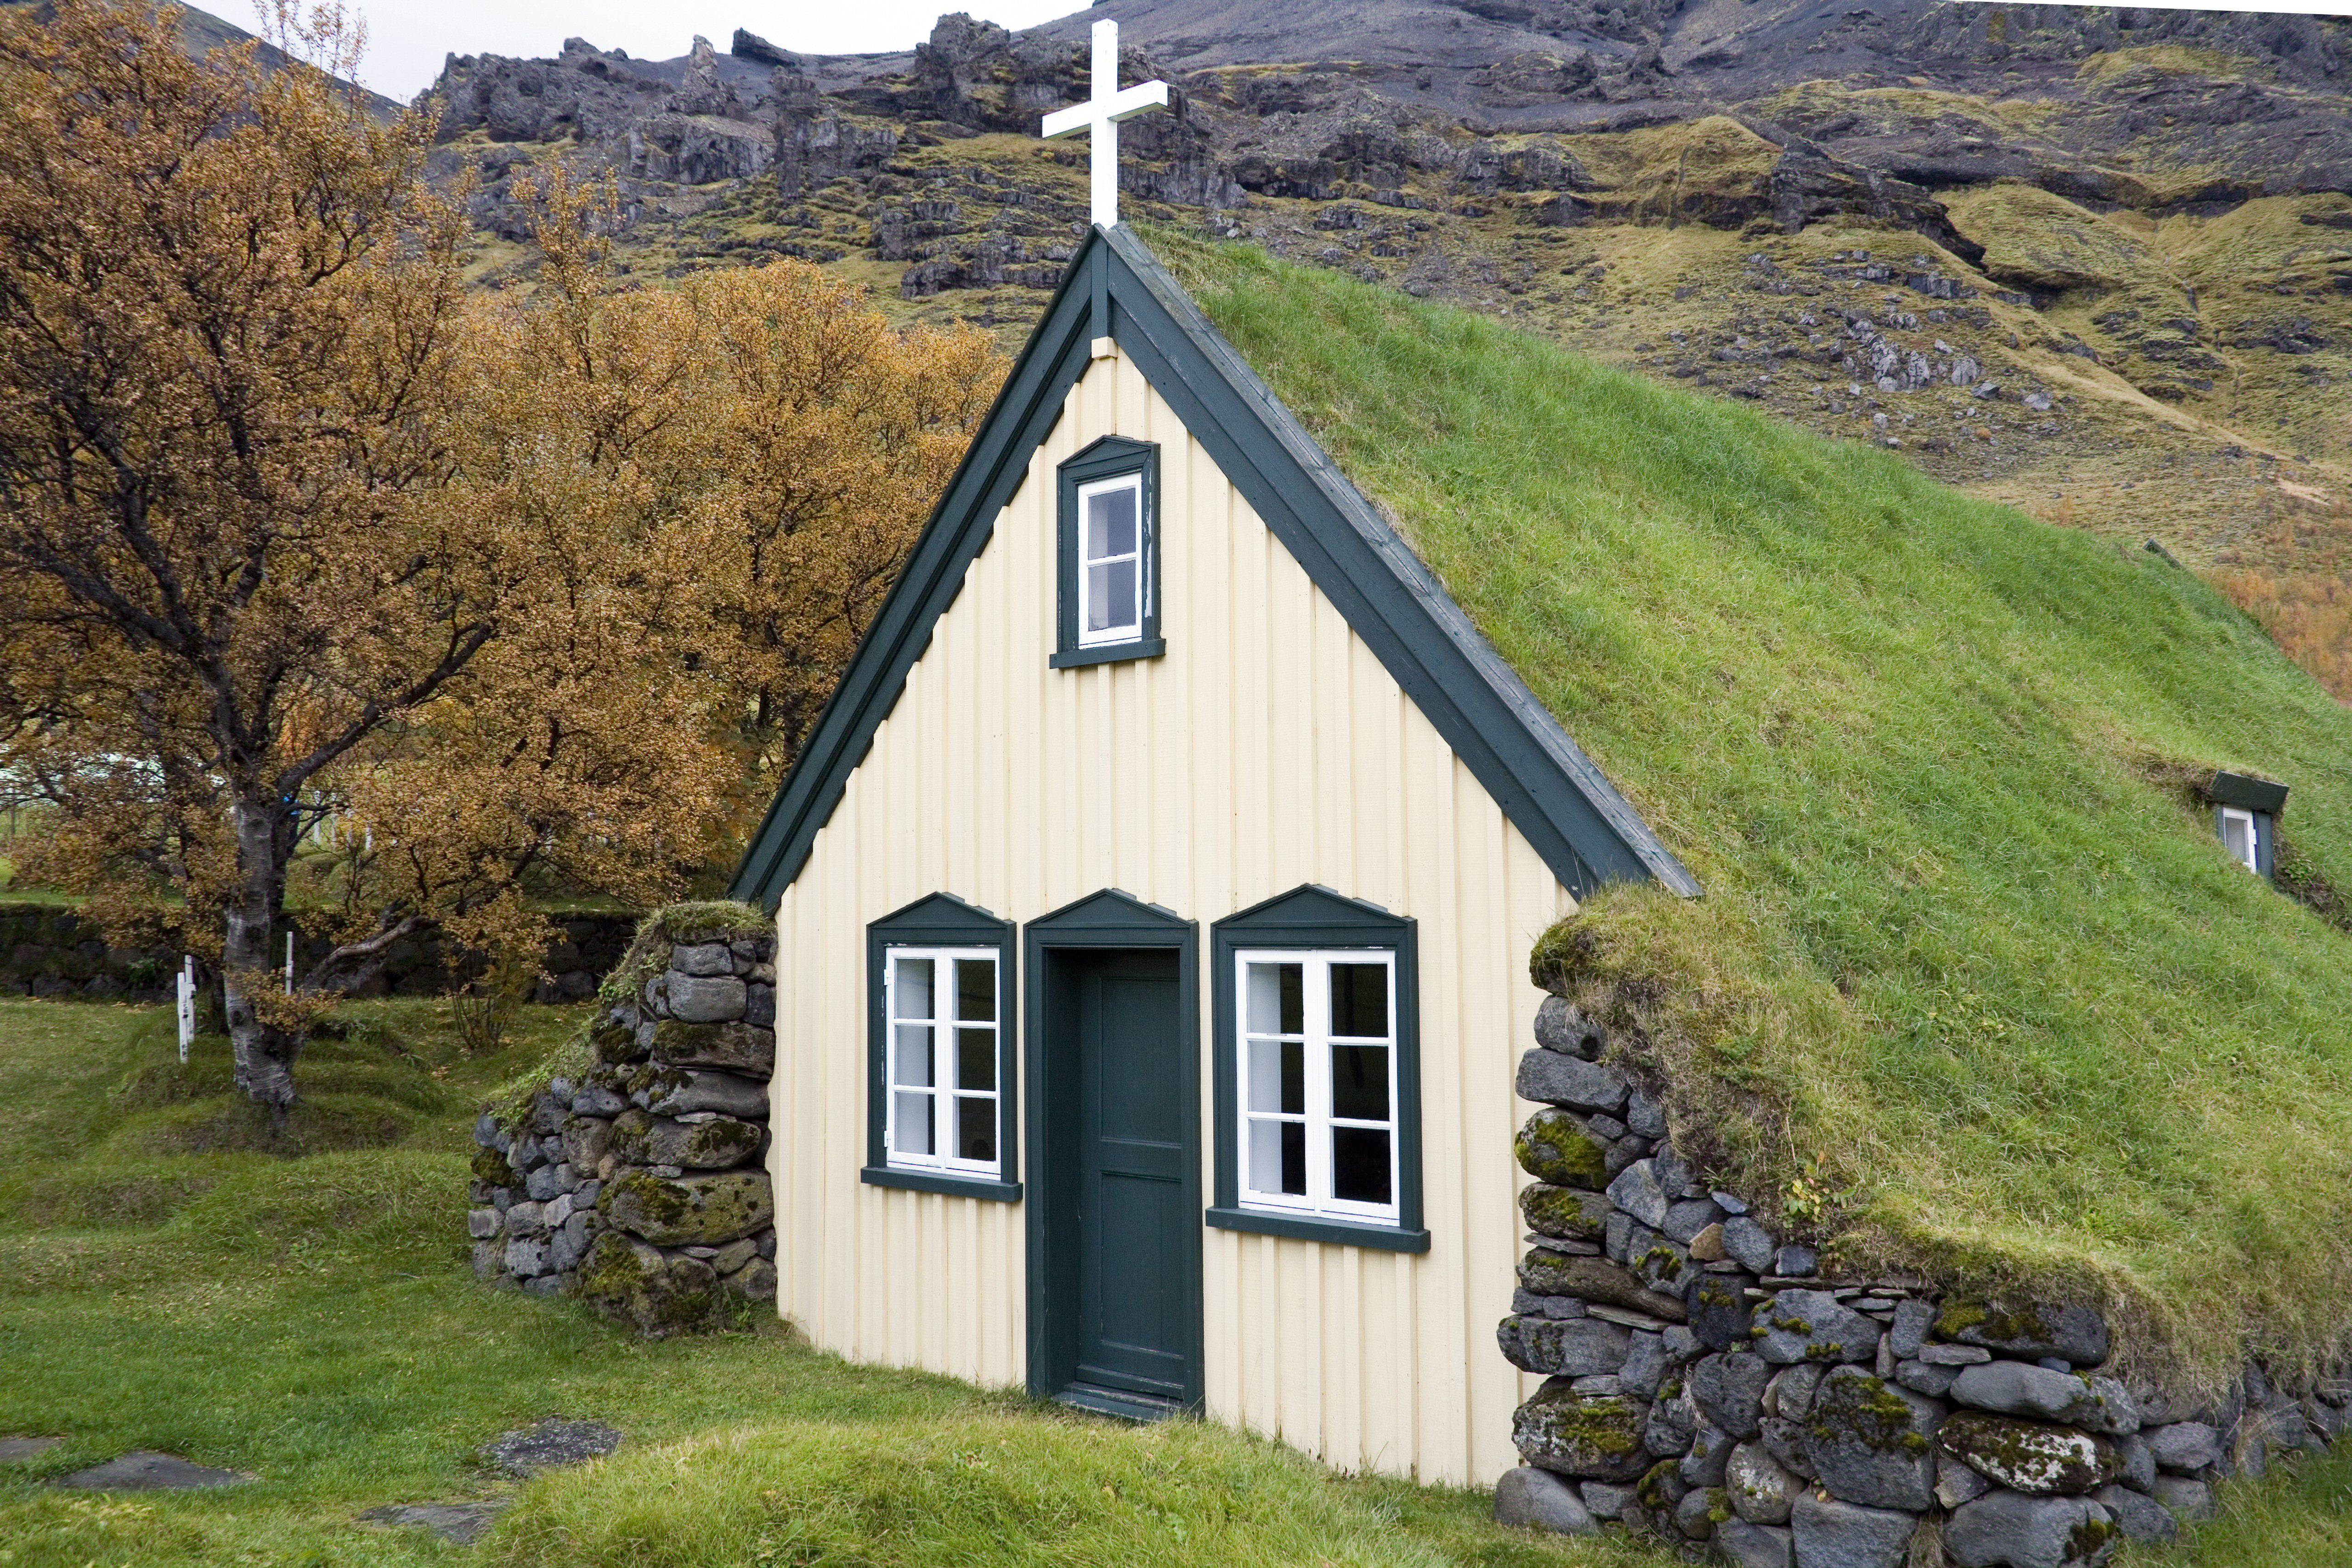 small, white church facade with sod gable roof